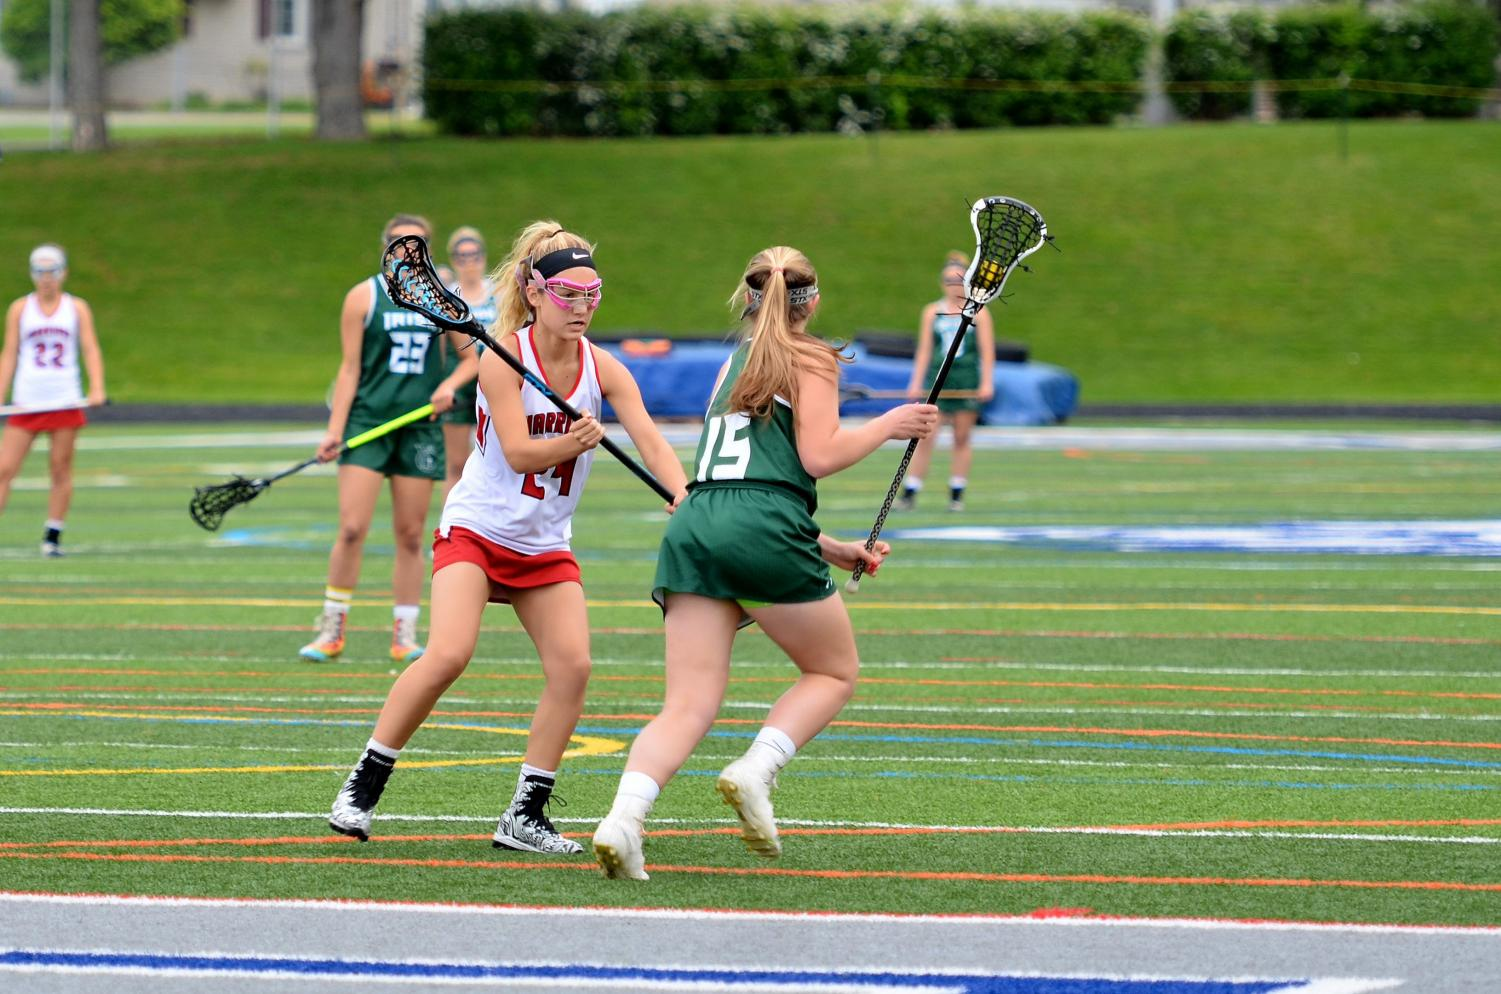 Hannah Mummert had a dominant senior year in lacrosse.